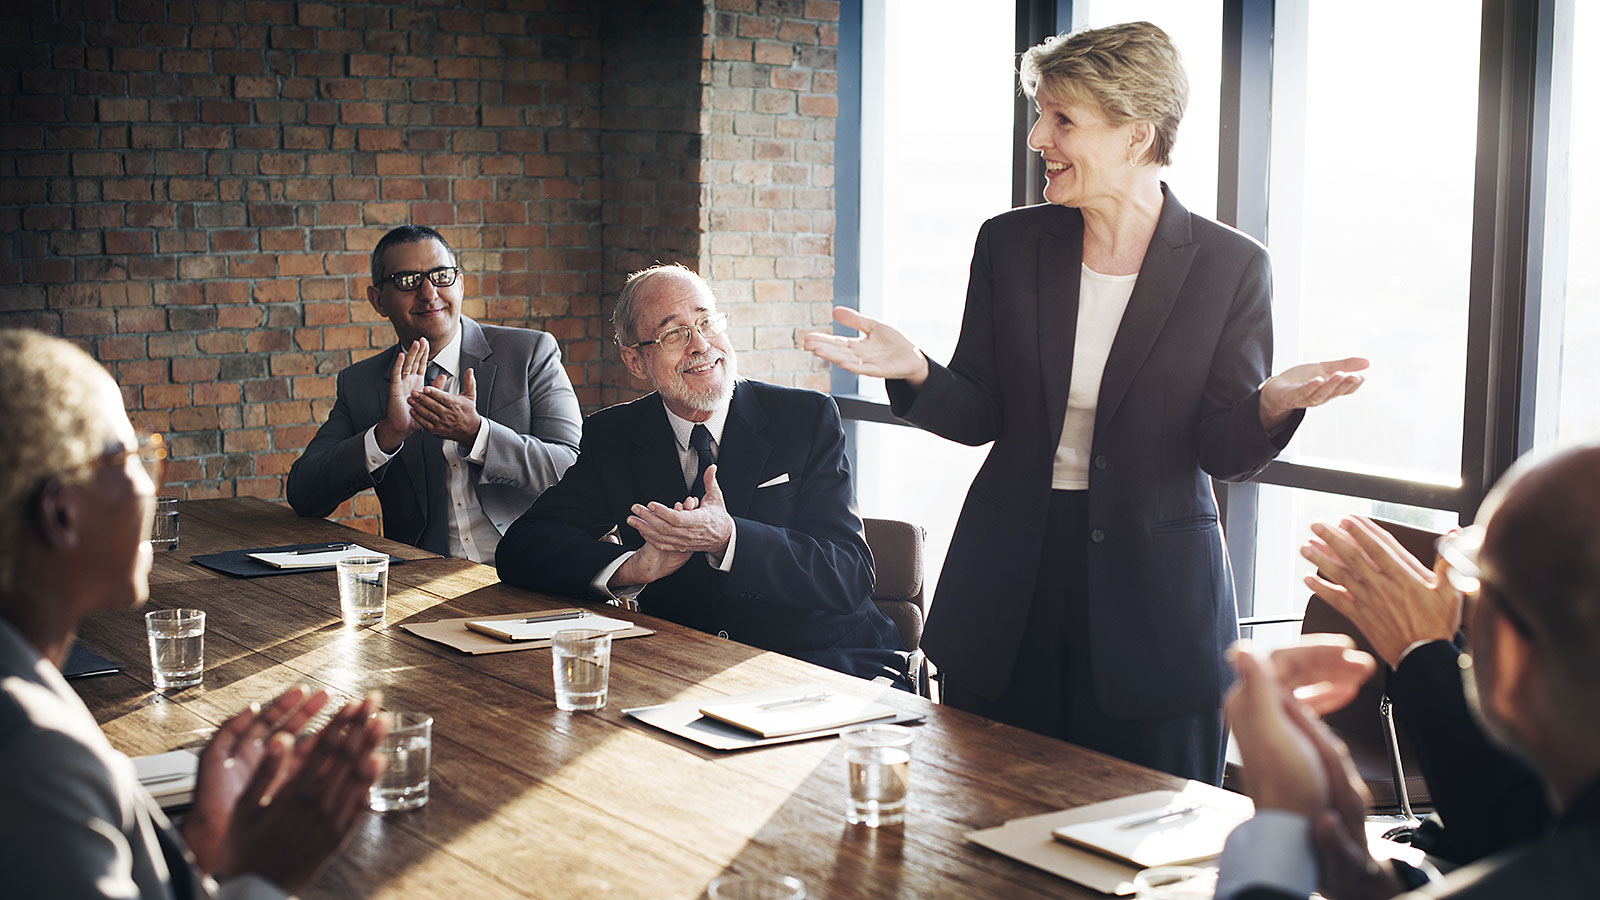 The 4 simple behaviors that turn ordinary people into CEOs, according to researchers